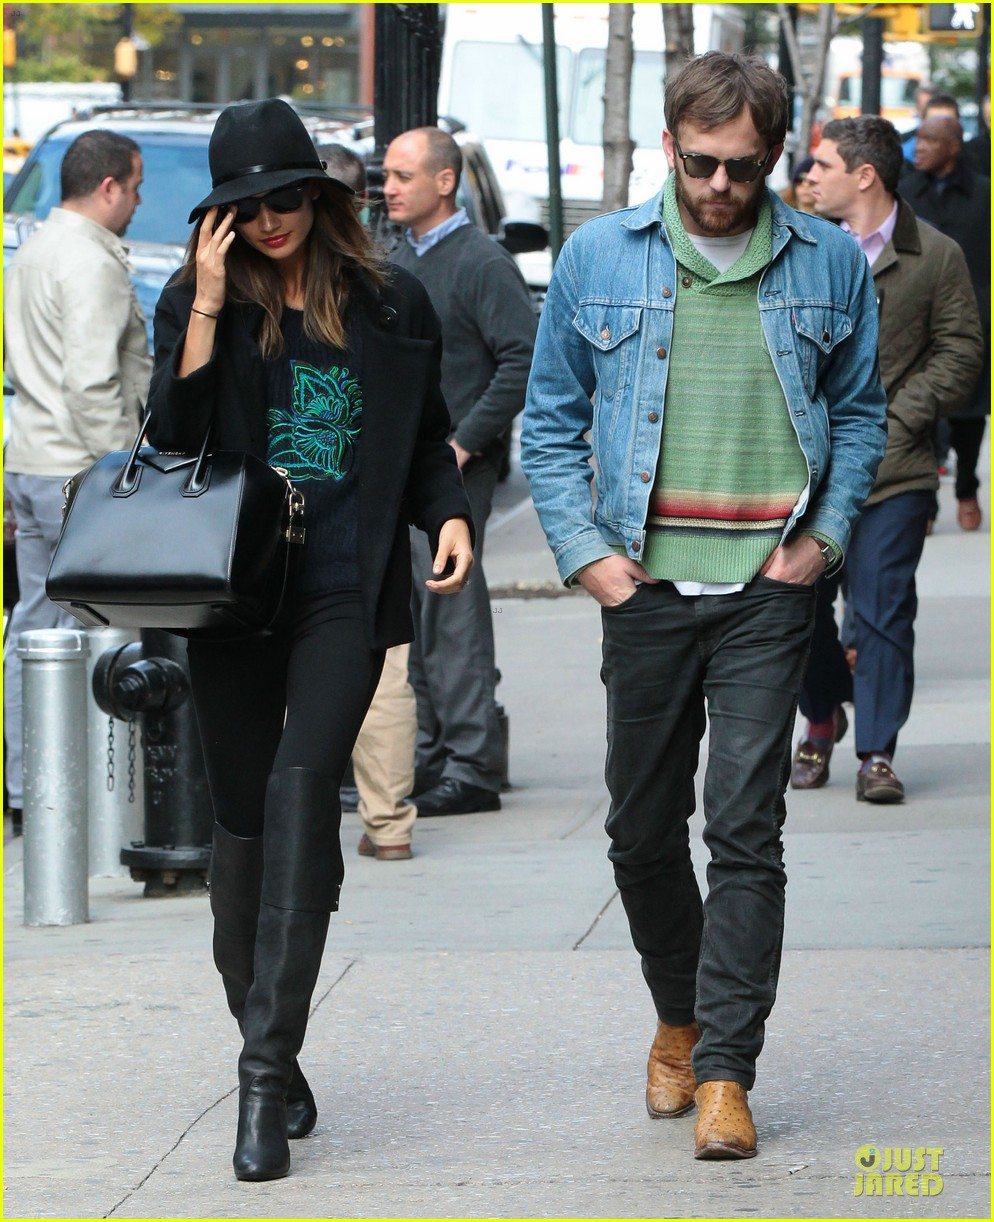 Caleb Followill 2014Lily Aldridge And Caleb Followill 2014